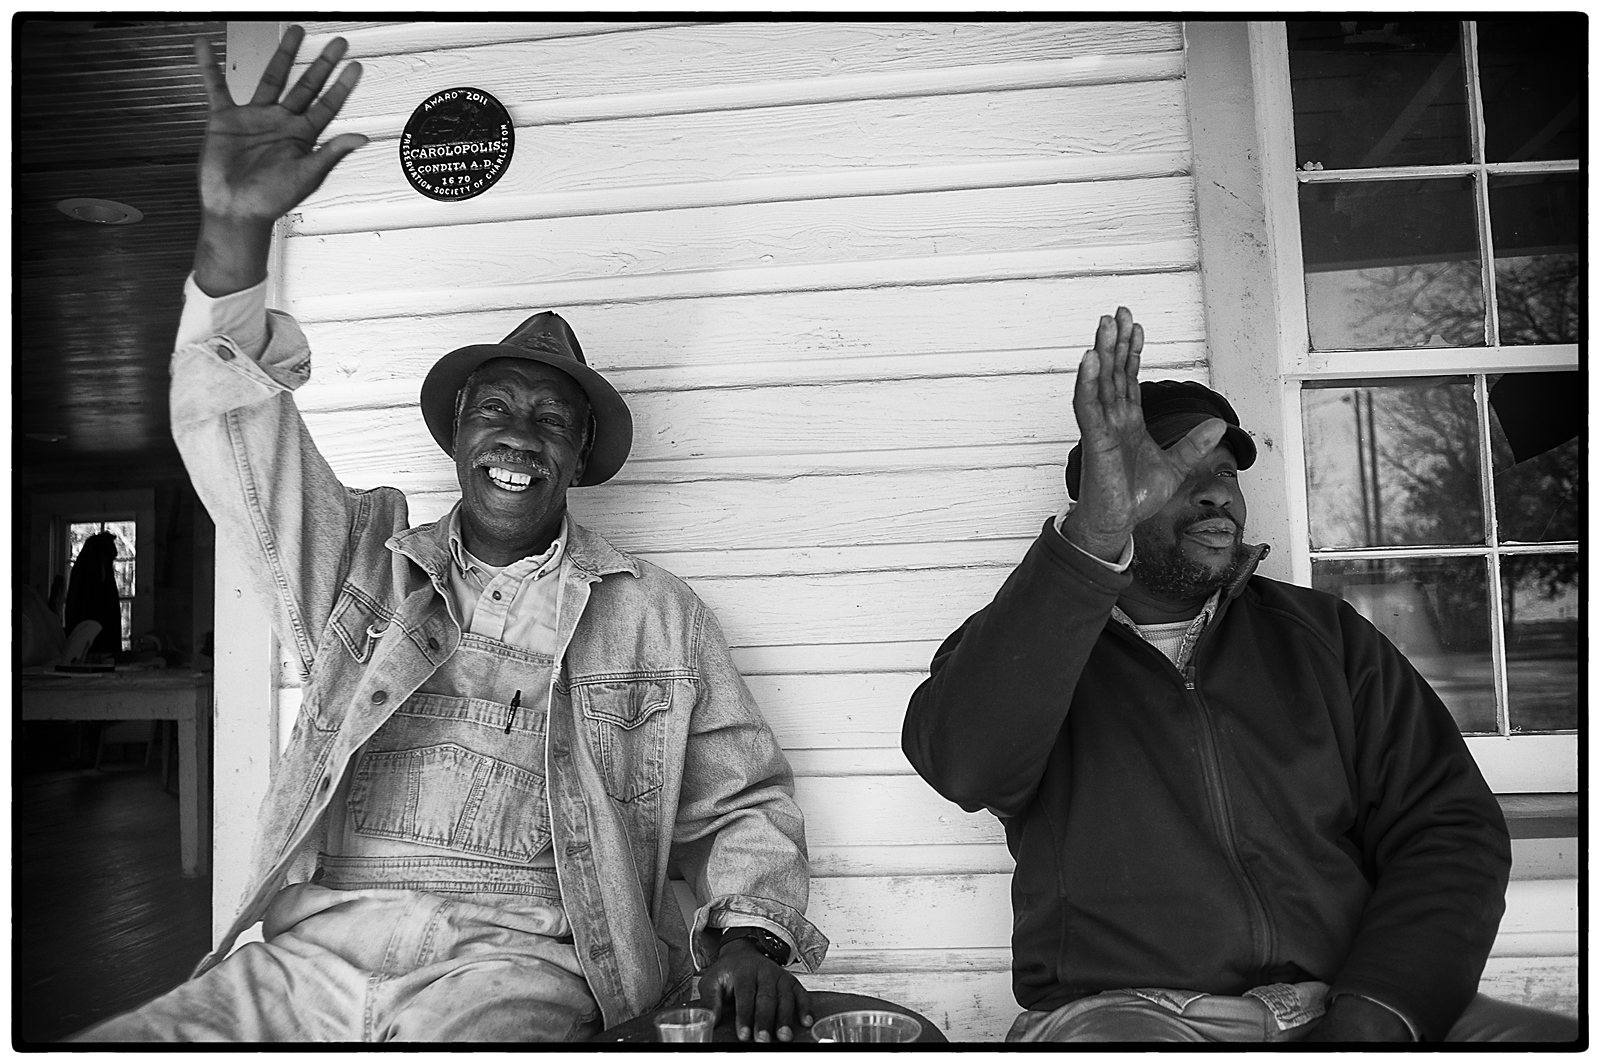 Ernest Parks and James Brown wave to passers-by from the porch of the Seaside Farmers Lodge on Sol Legare.